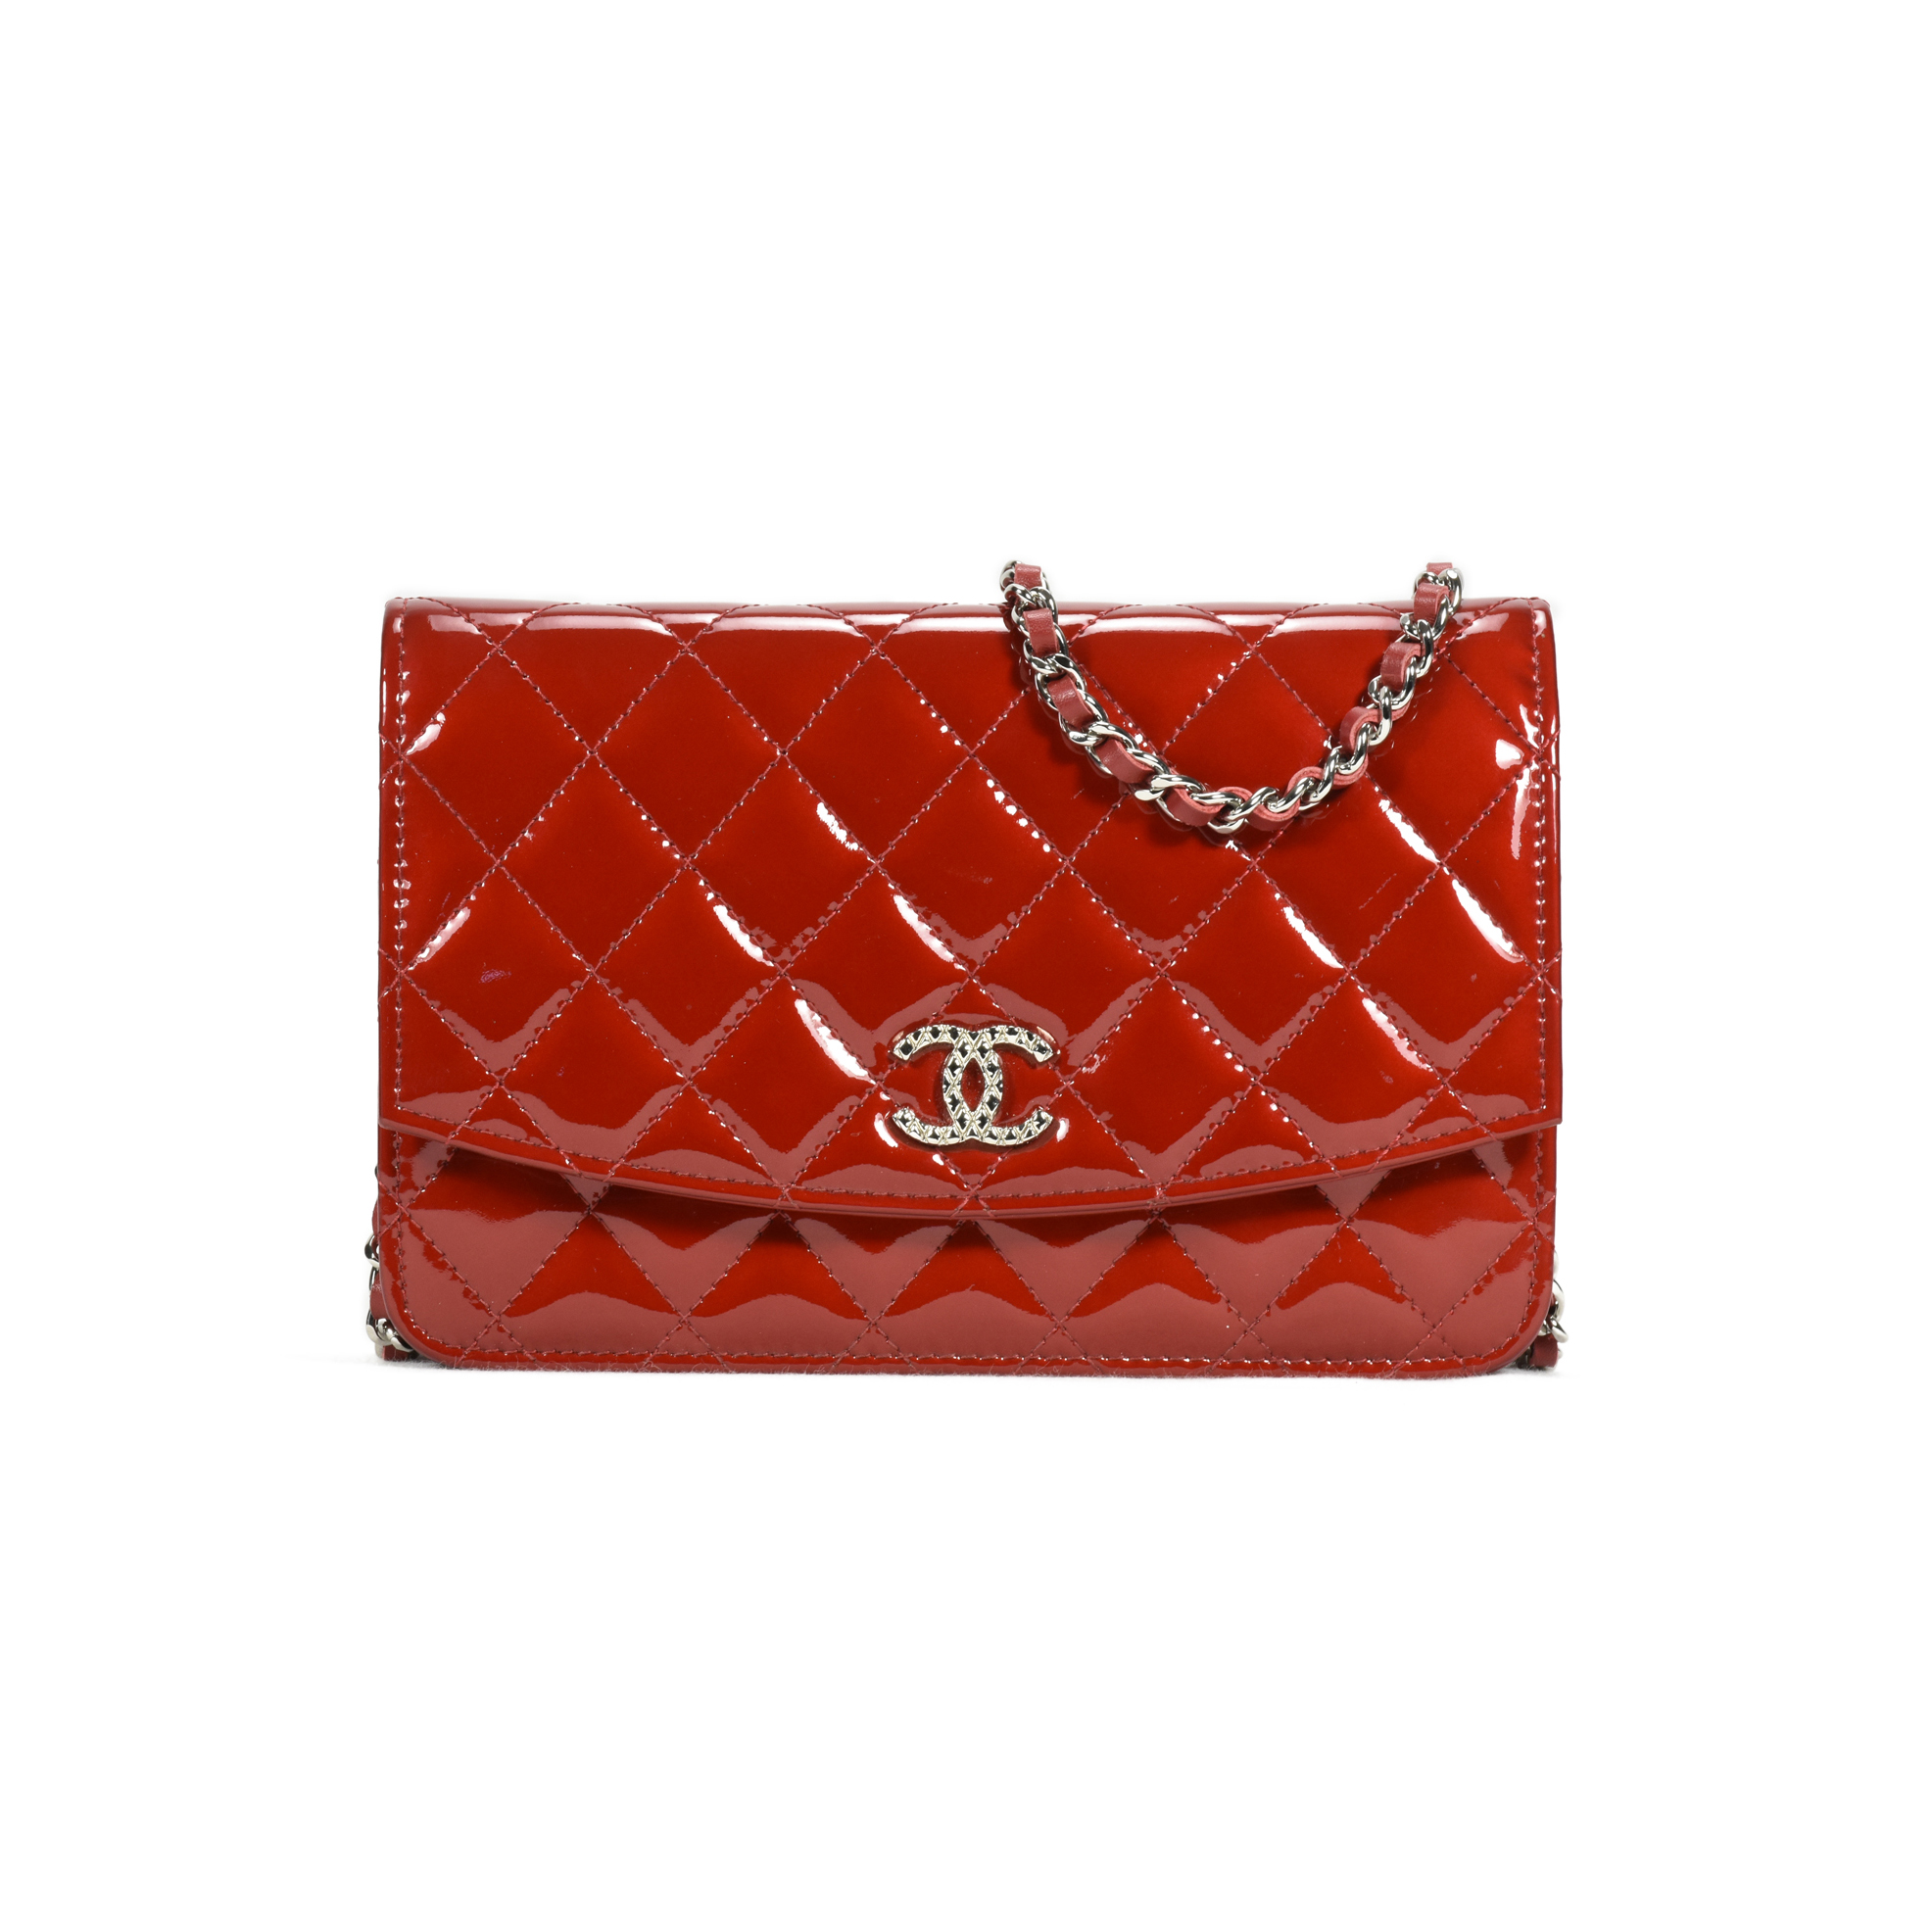 d494d71869a6 Authentic Second Hand Chanel Patent Brilliant Wallet on Chain  (PSS-240-00171) | THE FIFTH COLLECTION